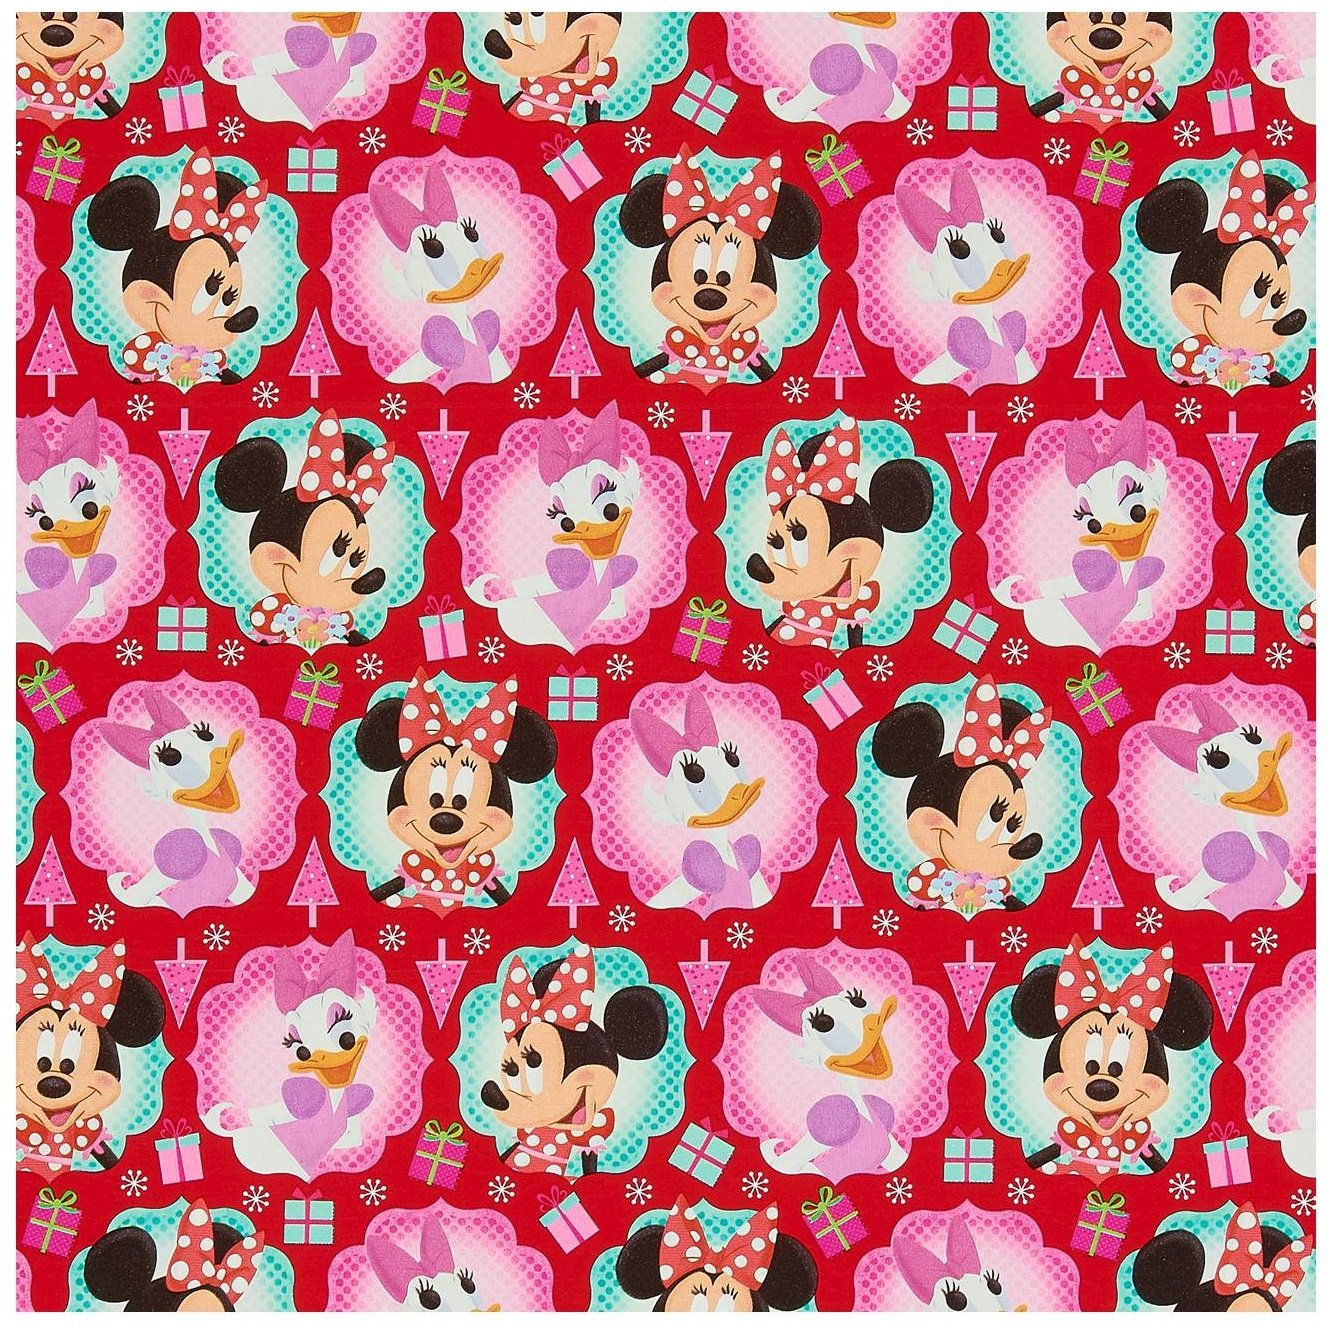 amazoncom disney minnie mouse christmas wrapping paper 70 sq feet health personal care